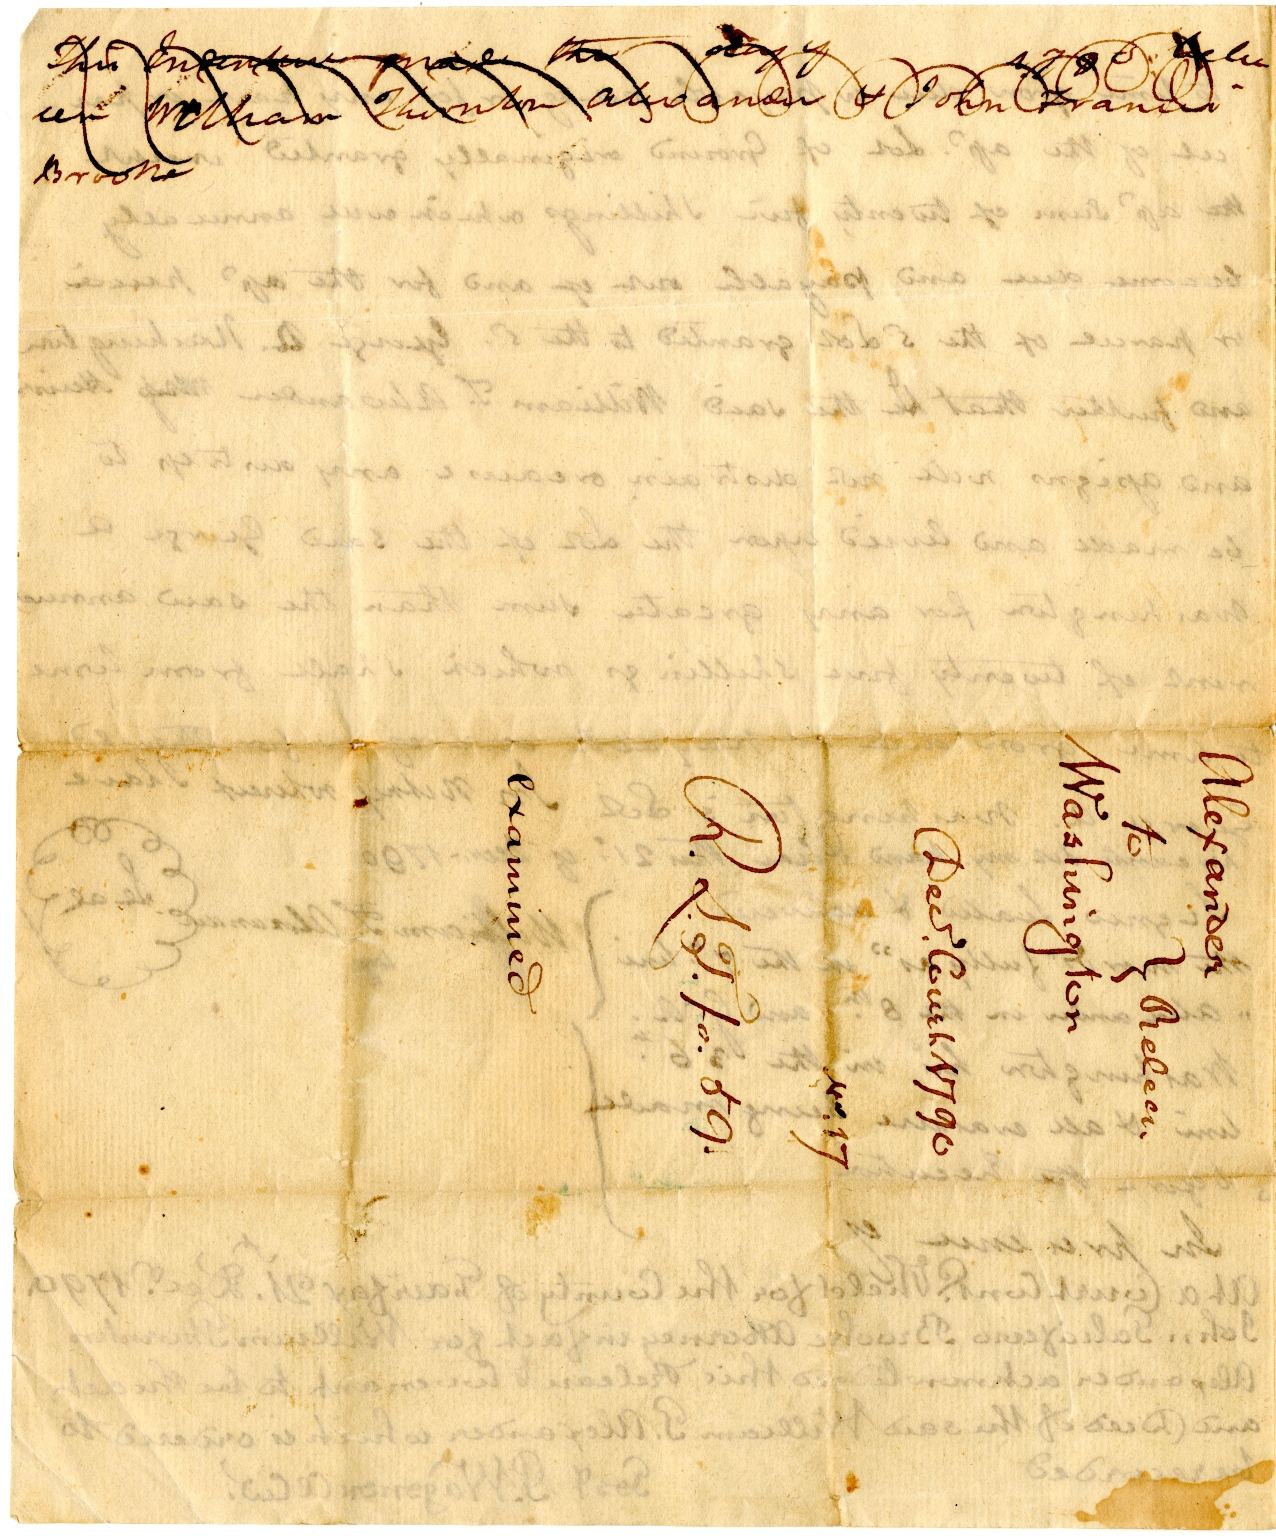 Rent of land document from William T. Alexander to George A. Washington